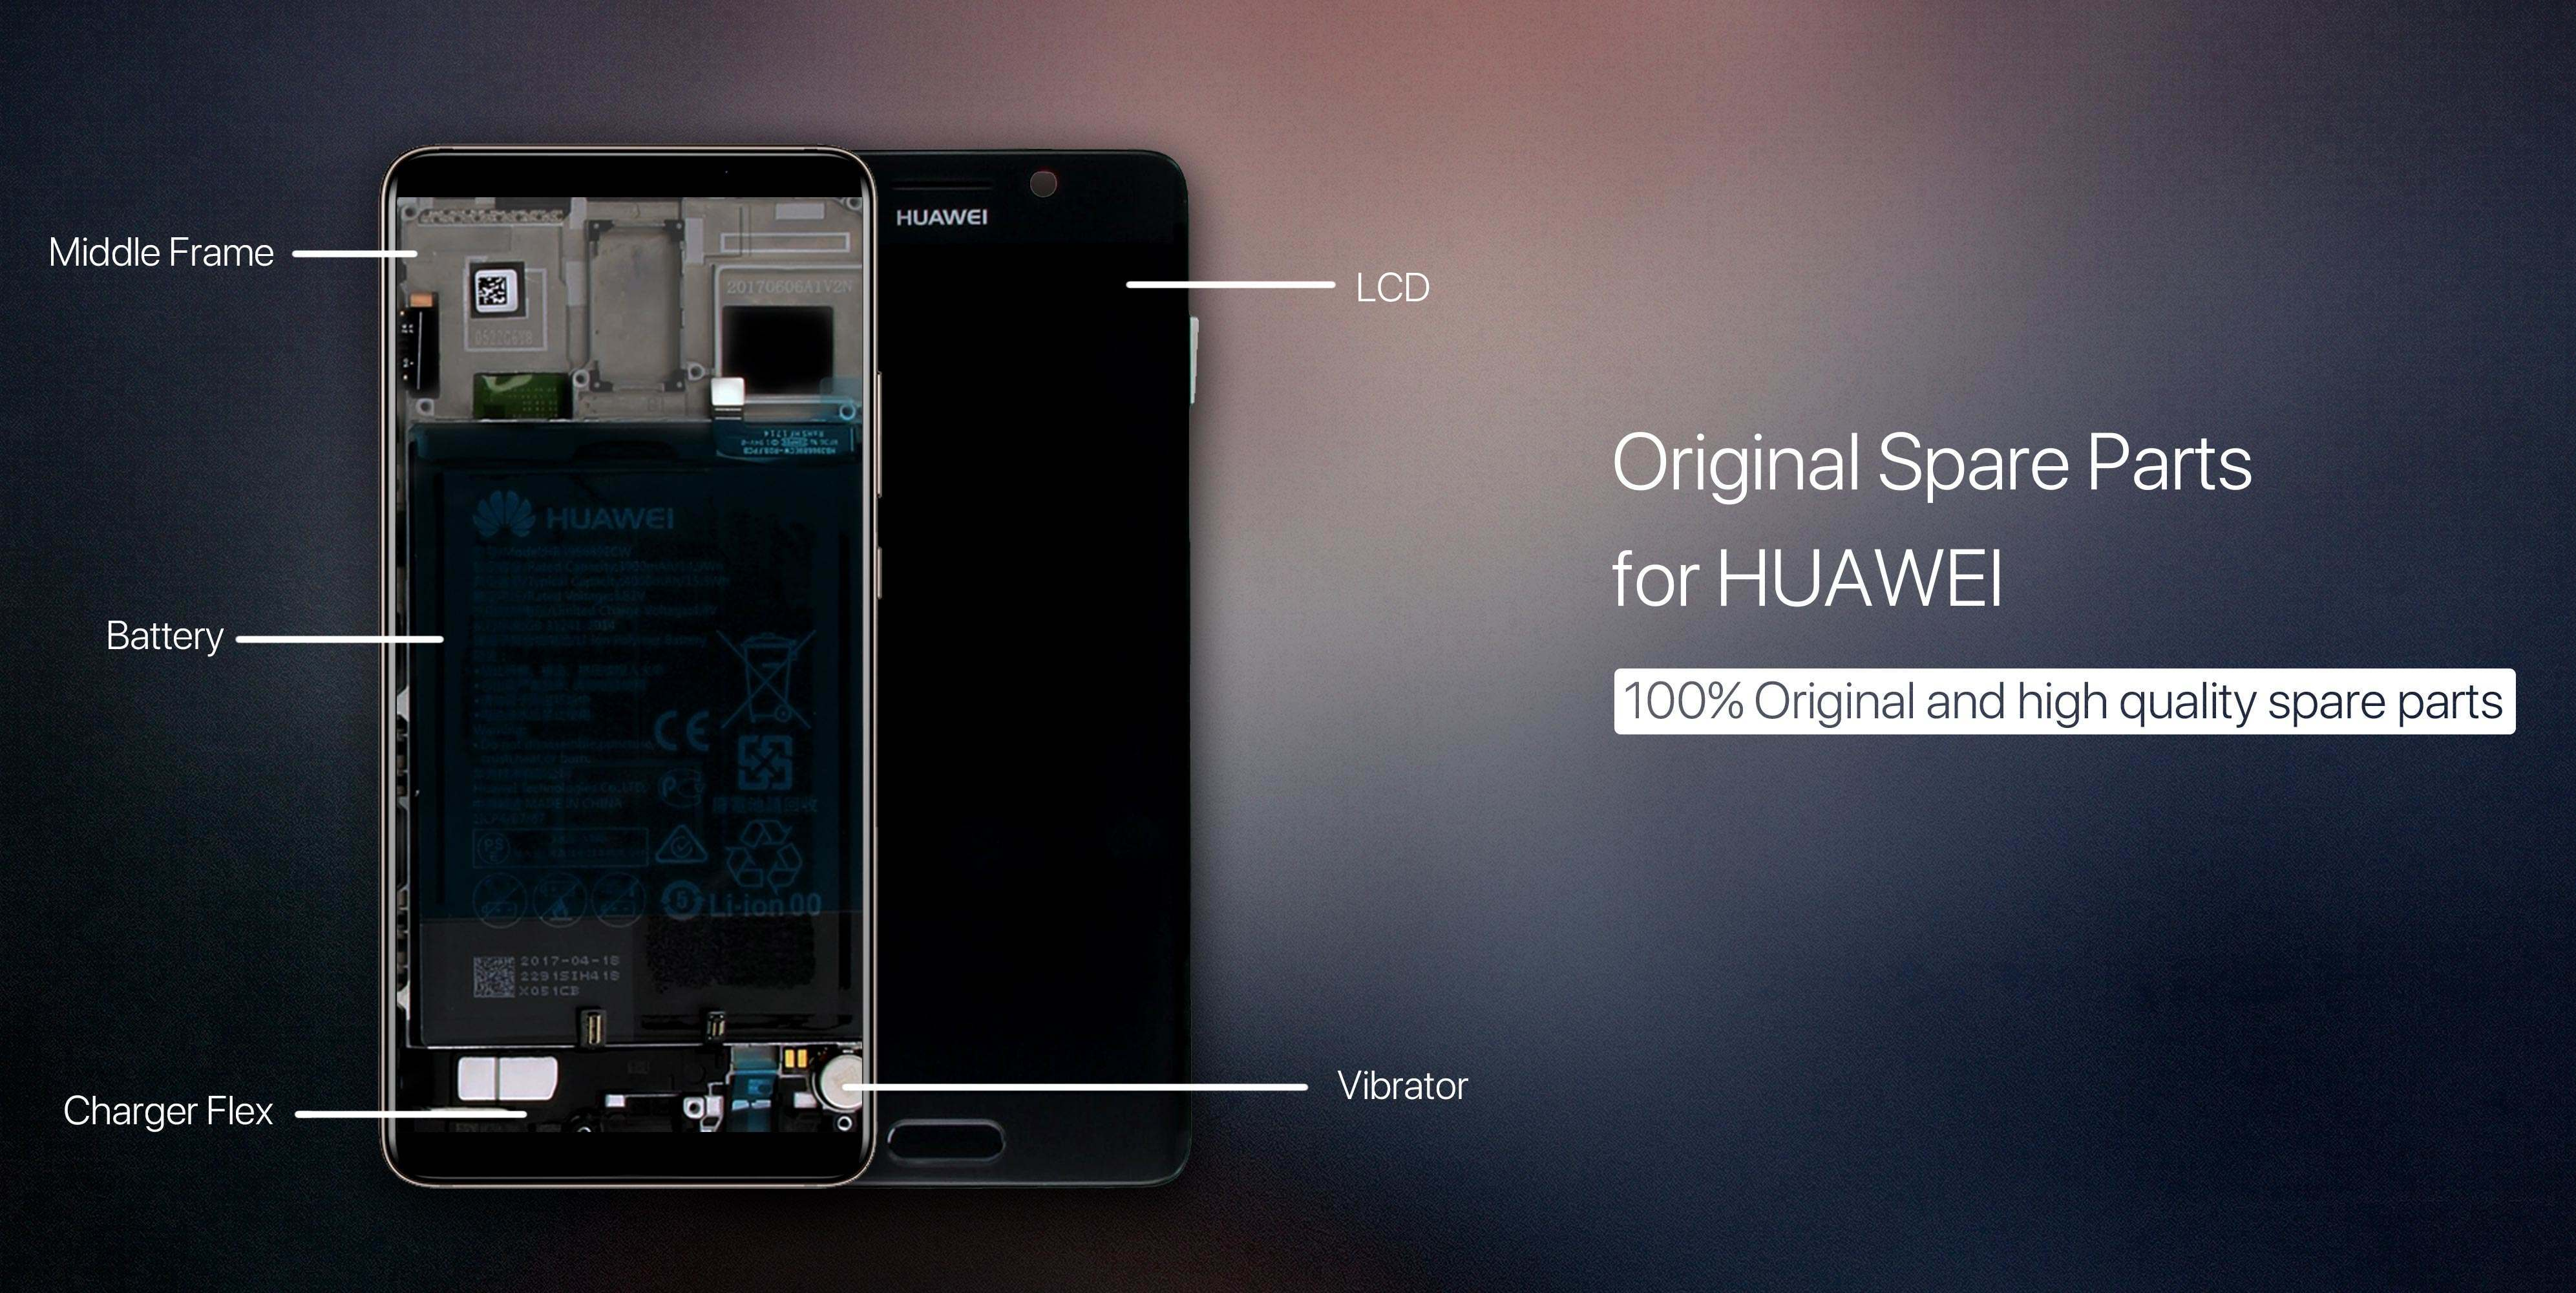 Original HUAWEI Spare Parts